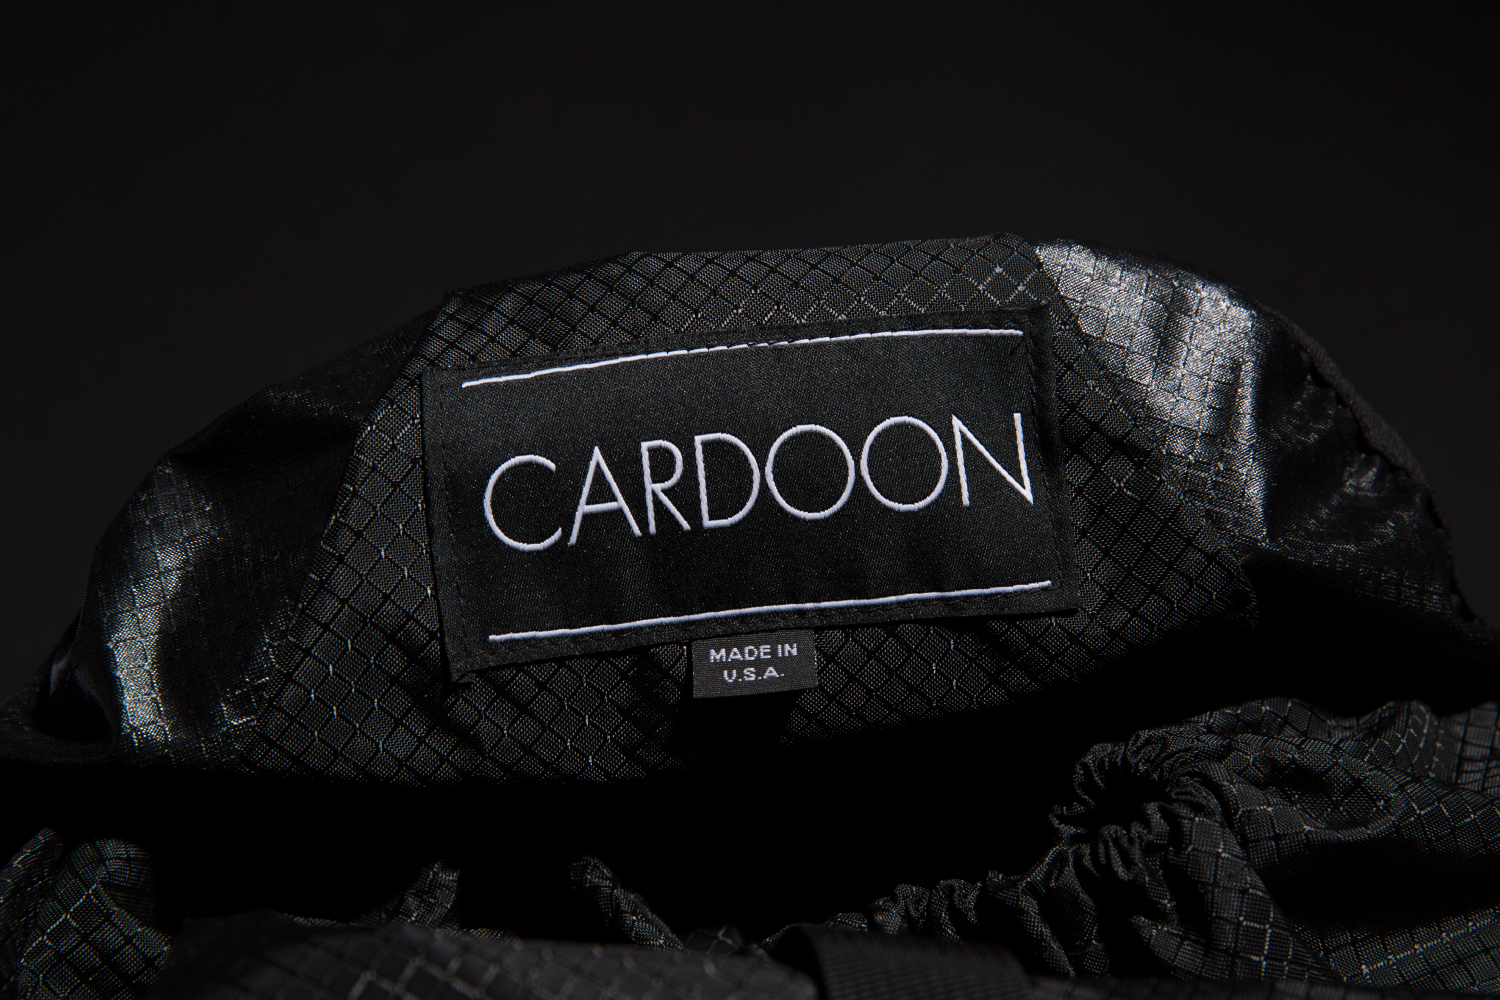 Cardoon label design and branding.